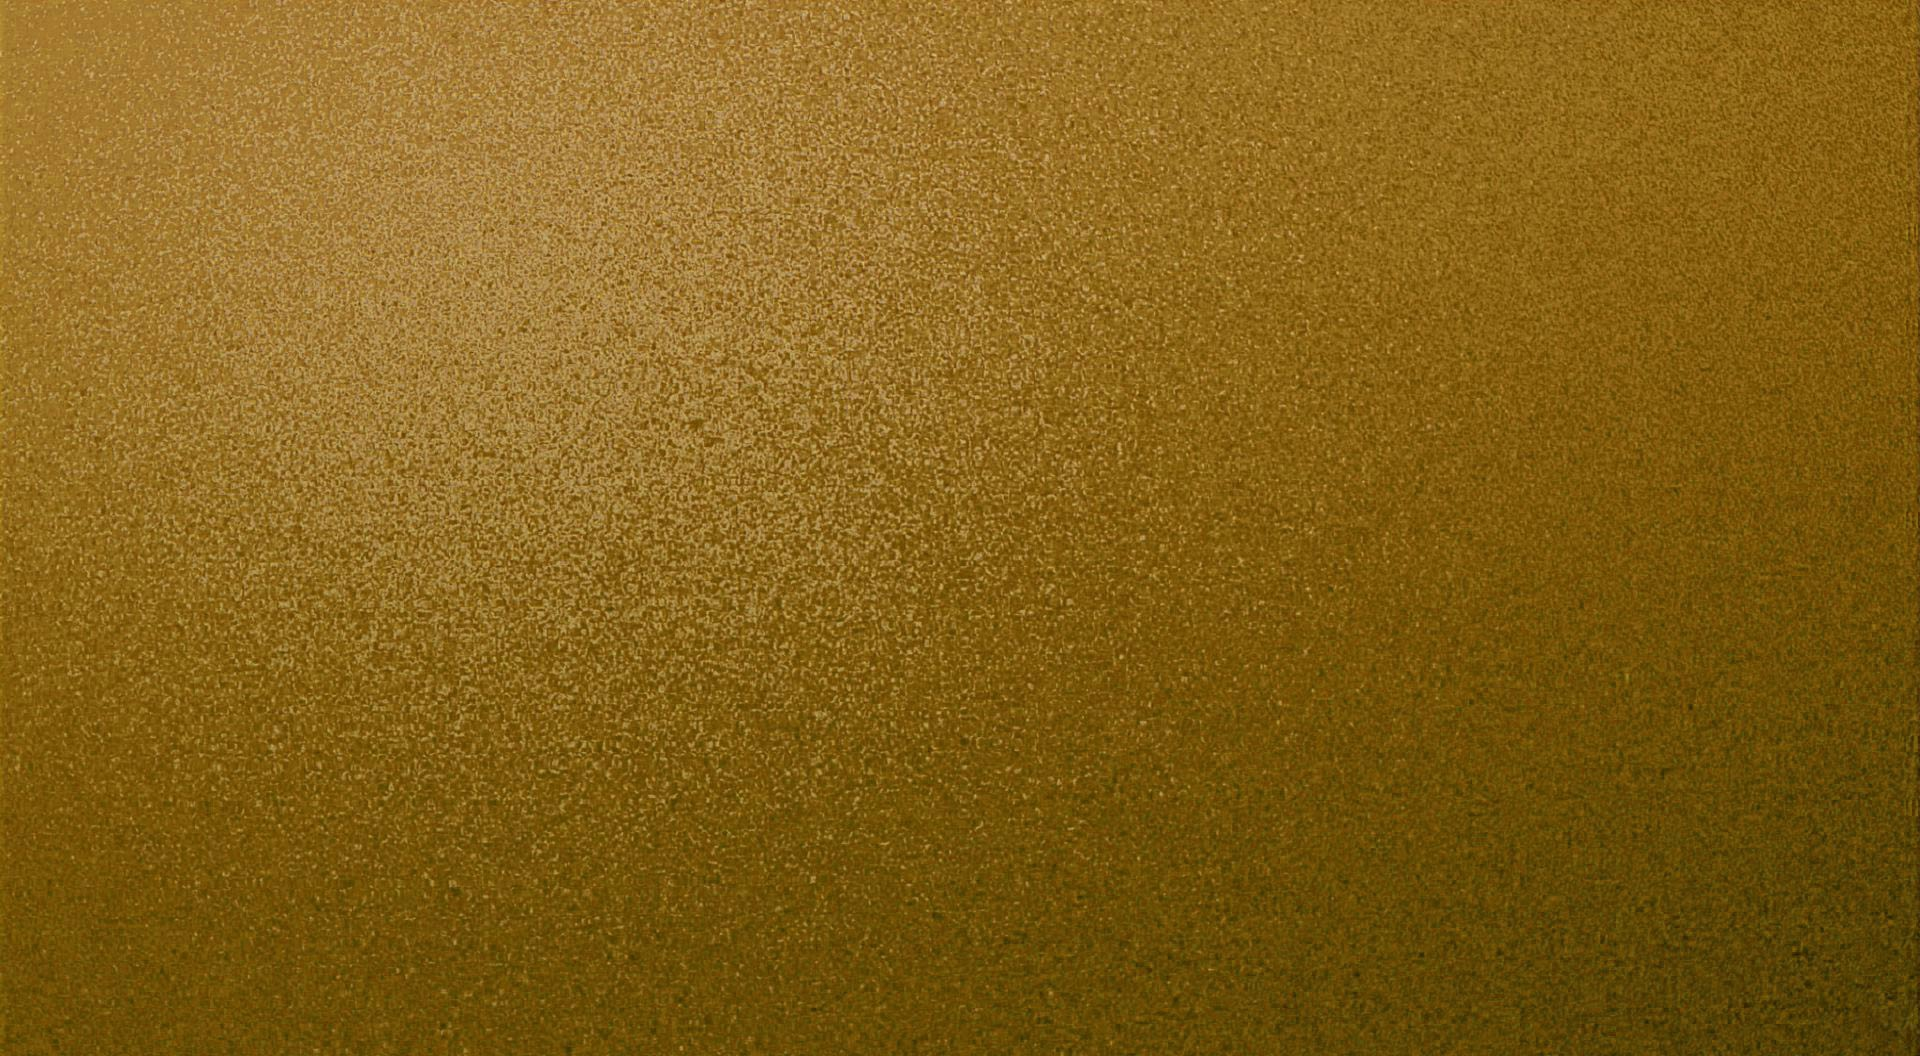 Goldyellow textured speckled desktop background wallpaper for use 1920x1056